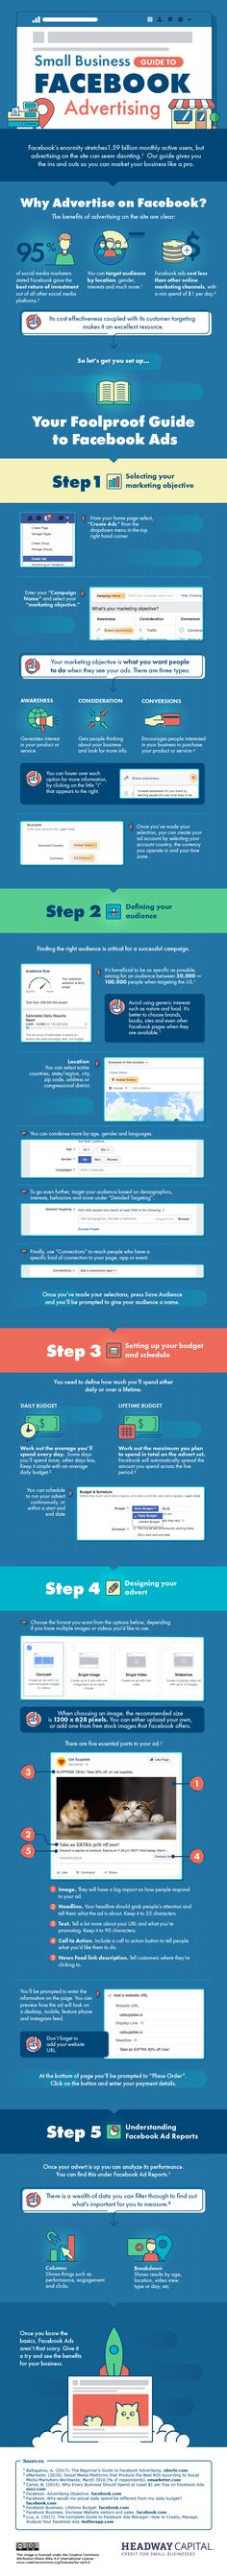 #infographic 5 step on how to advertise on #Facebook.